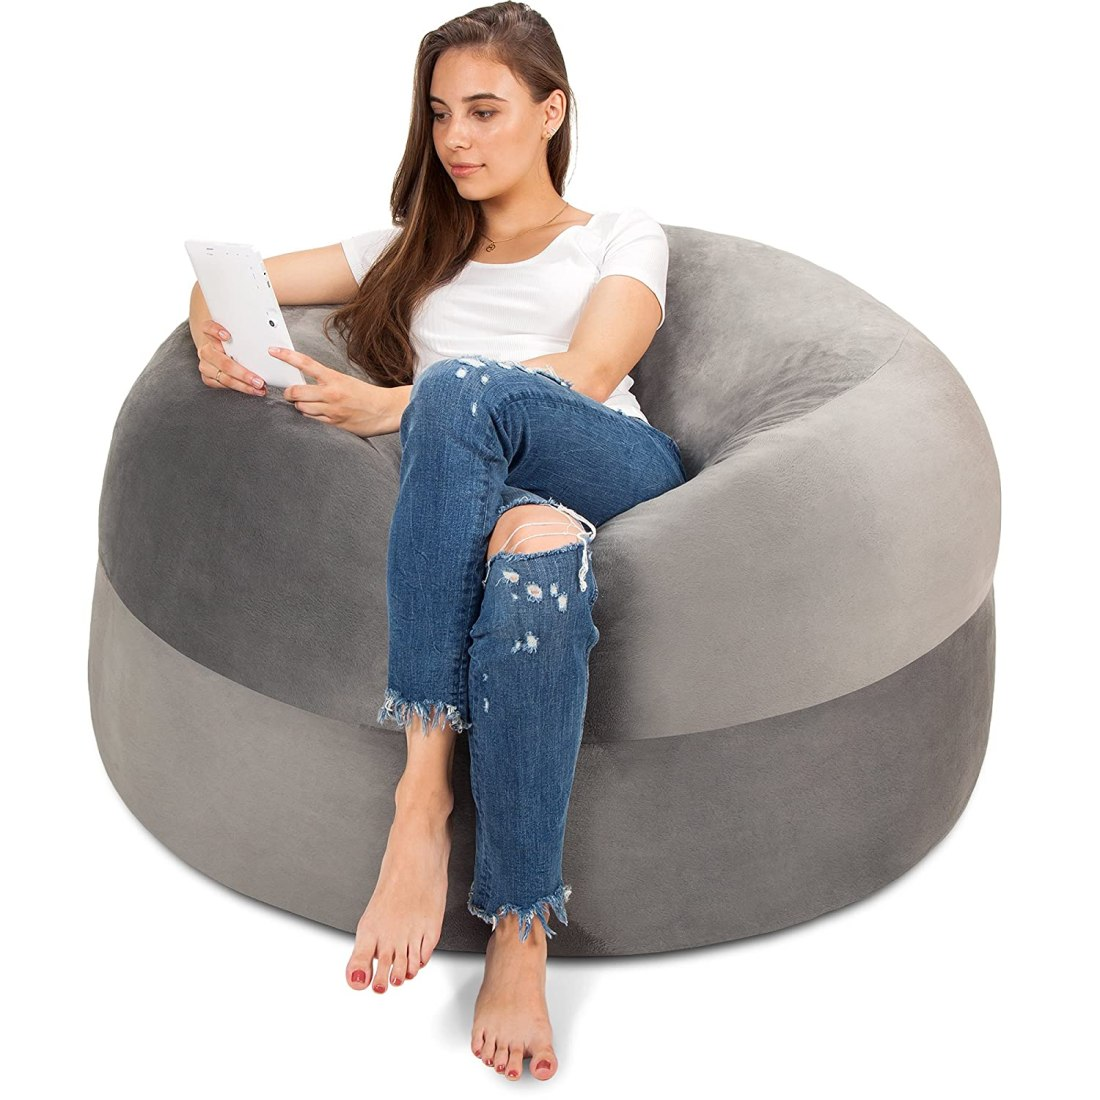 Wondrous Bean Bag Chair An Ideal Companion For Kids And Adults Ibusinesslaw Wood Chair Design Ideas Ibusinesslaworg